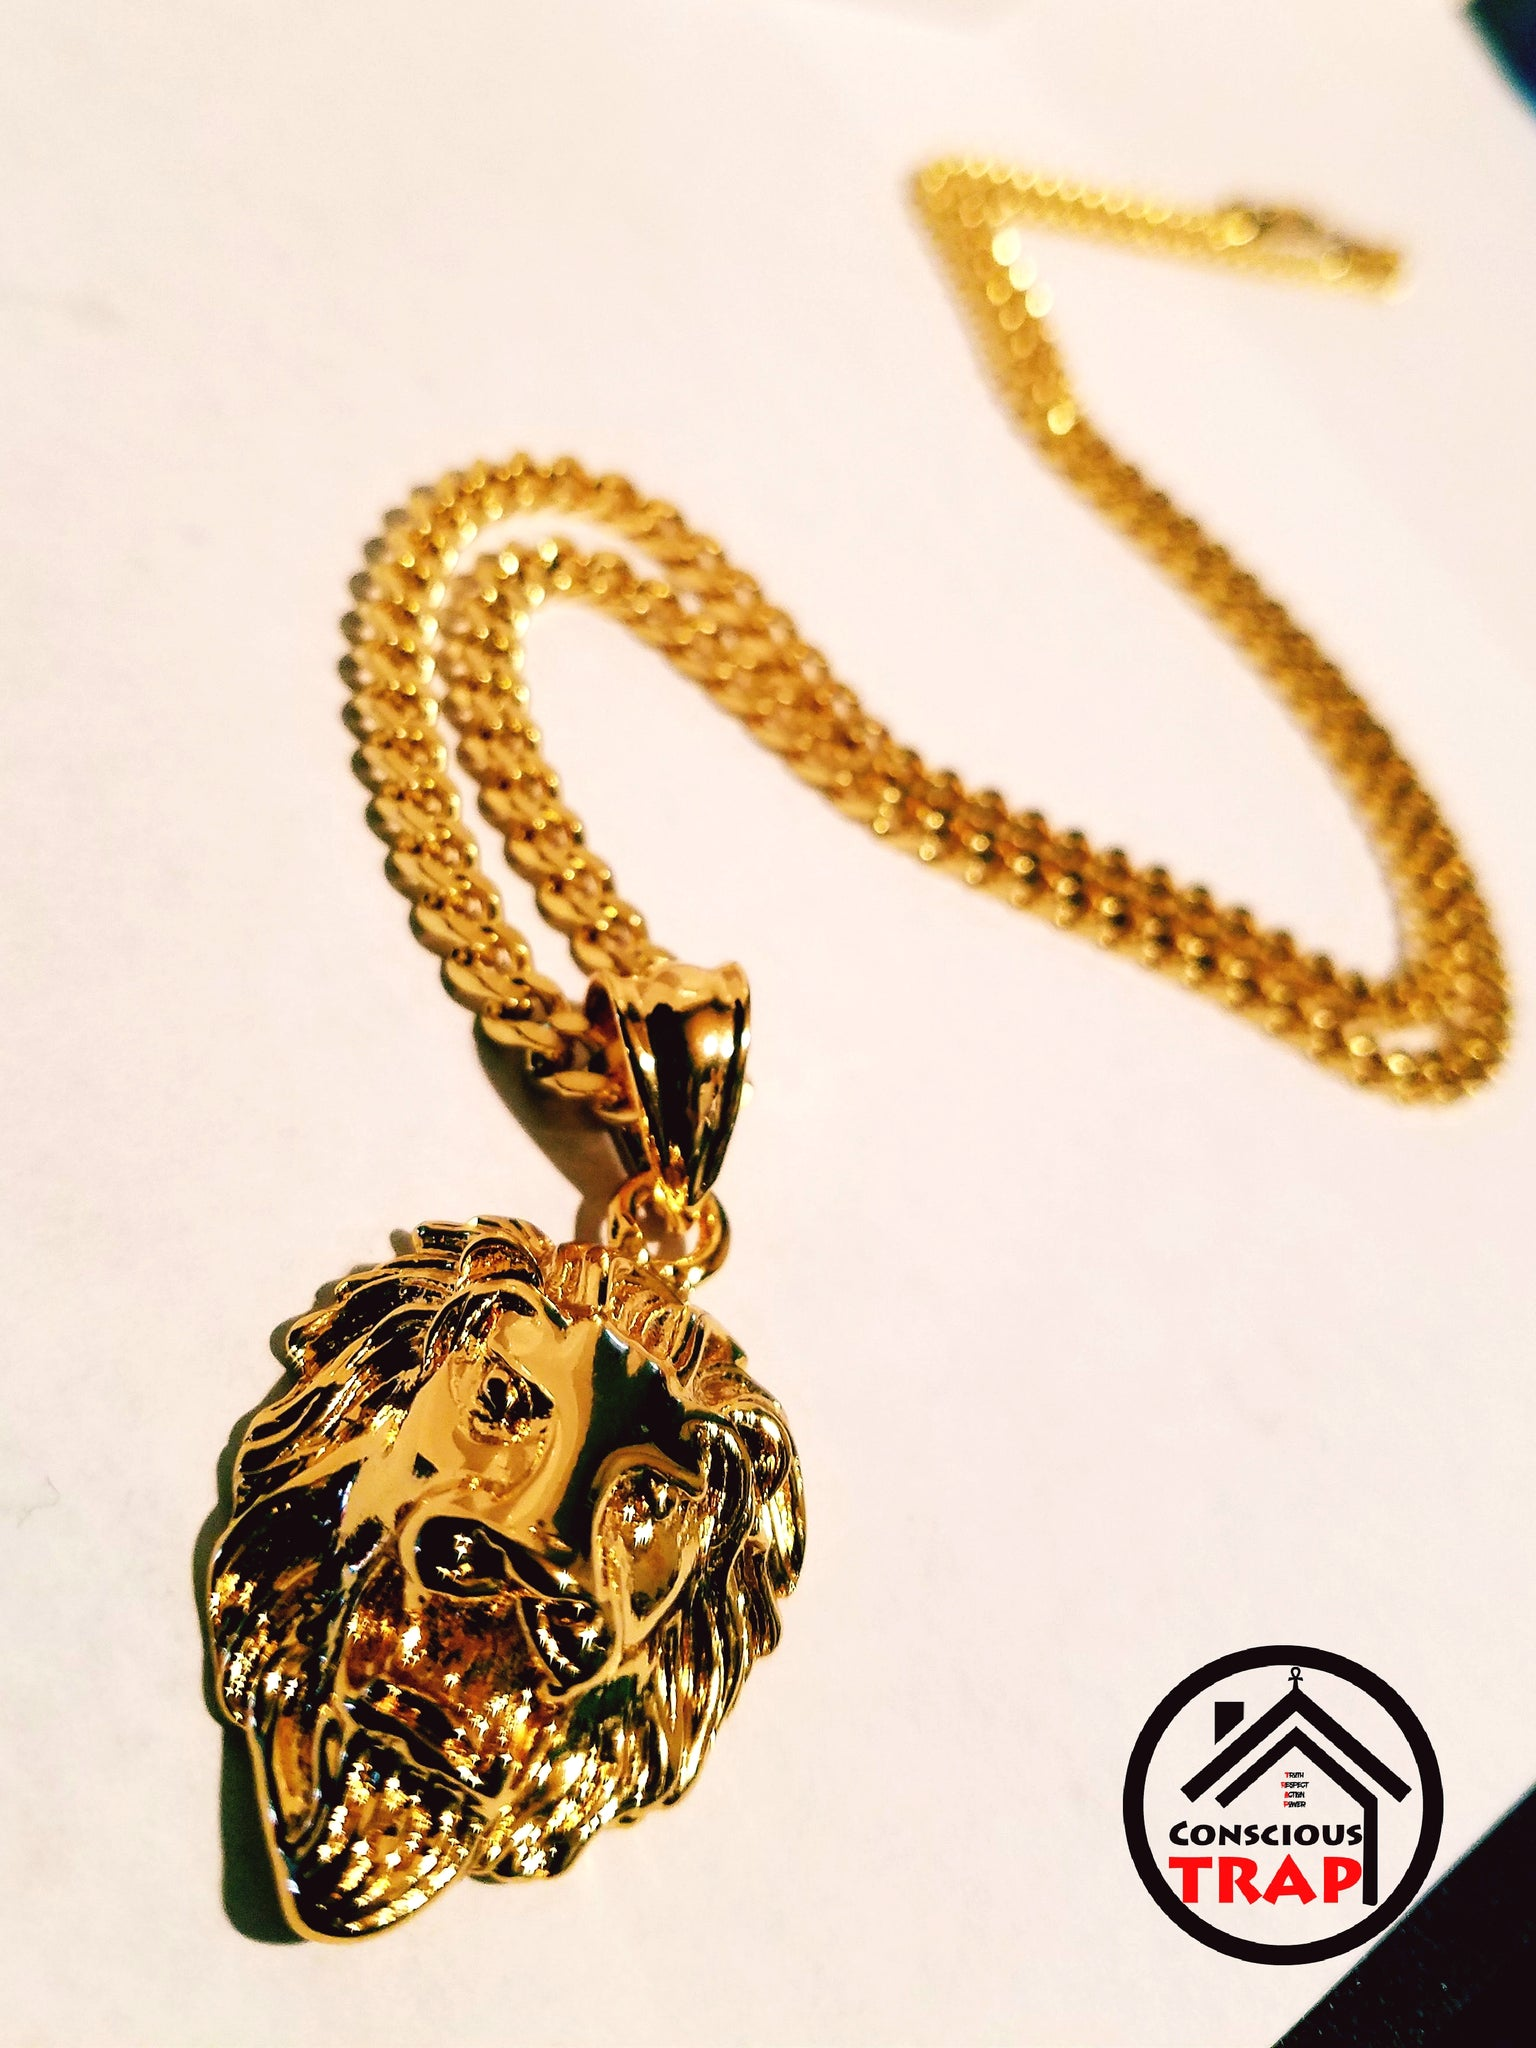 garment chain necklace quarter versus head pendant versace disk lion silver